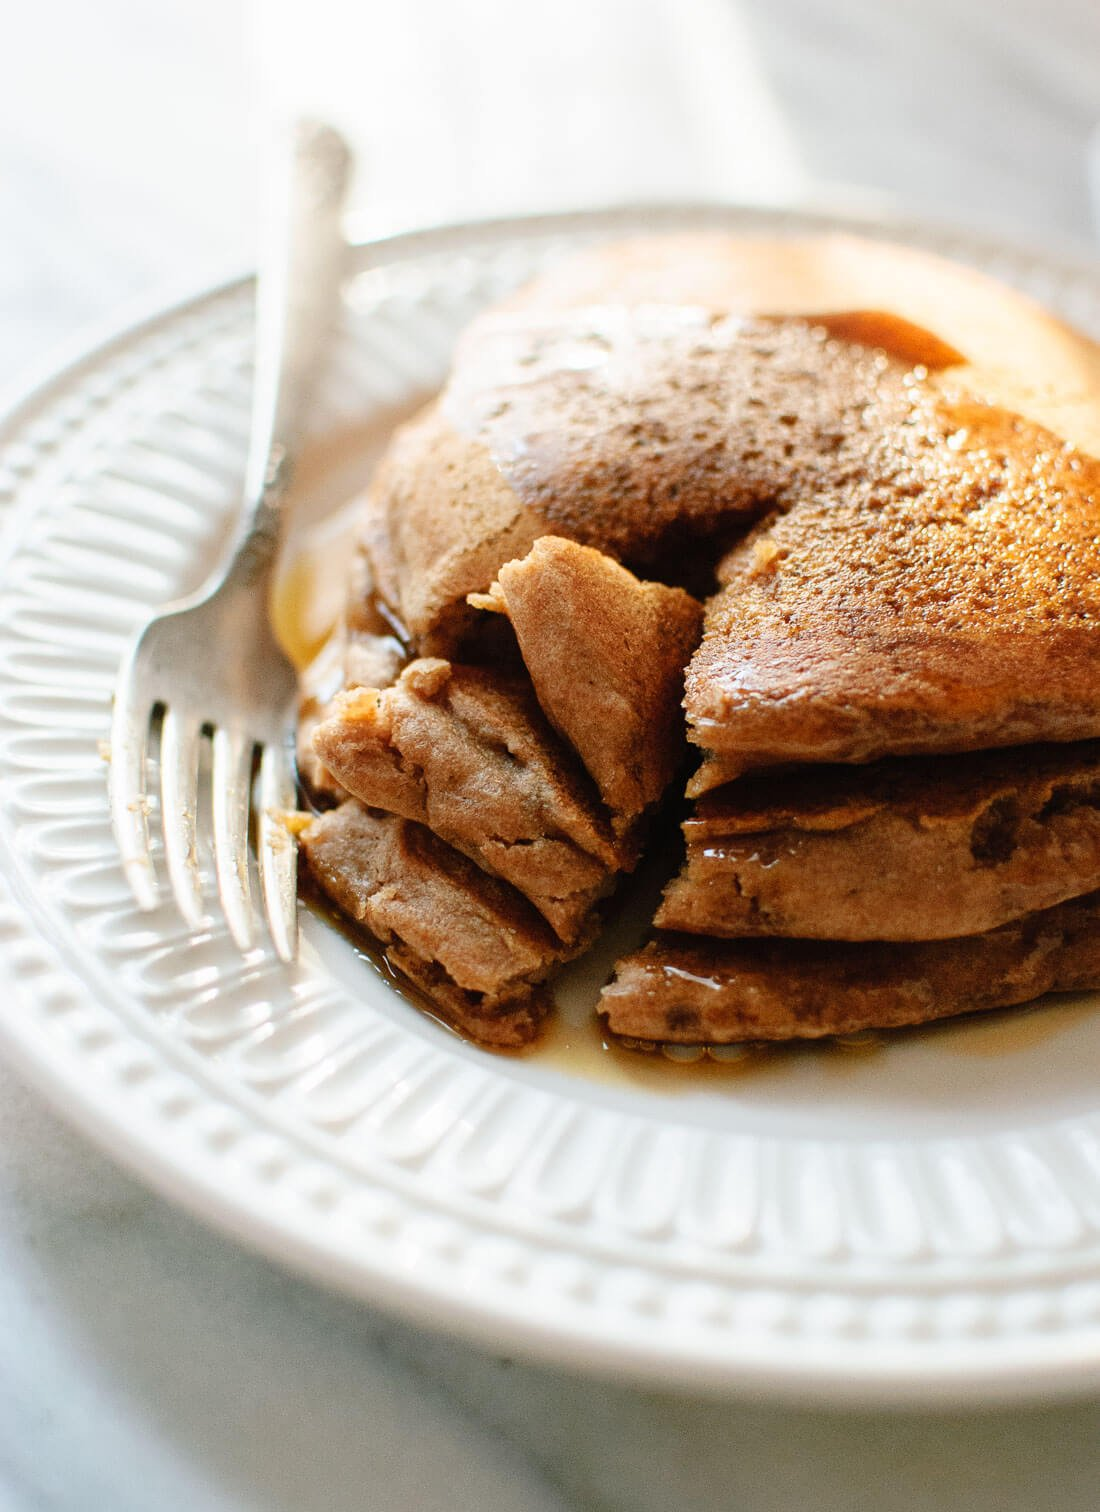 These fluffy vegan pancakes are the best! No eggs or egg substitutes required. cookieandkate.com